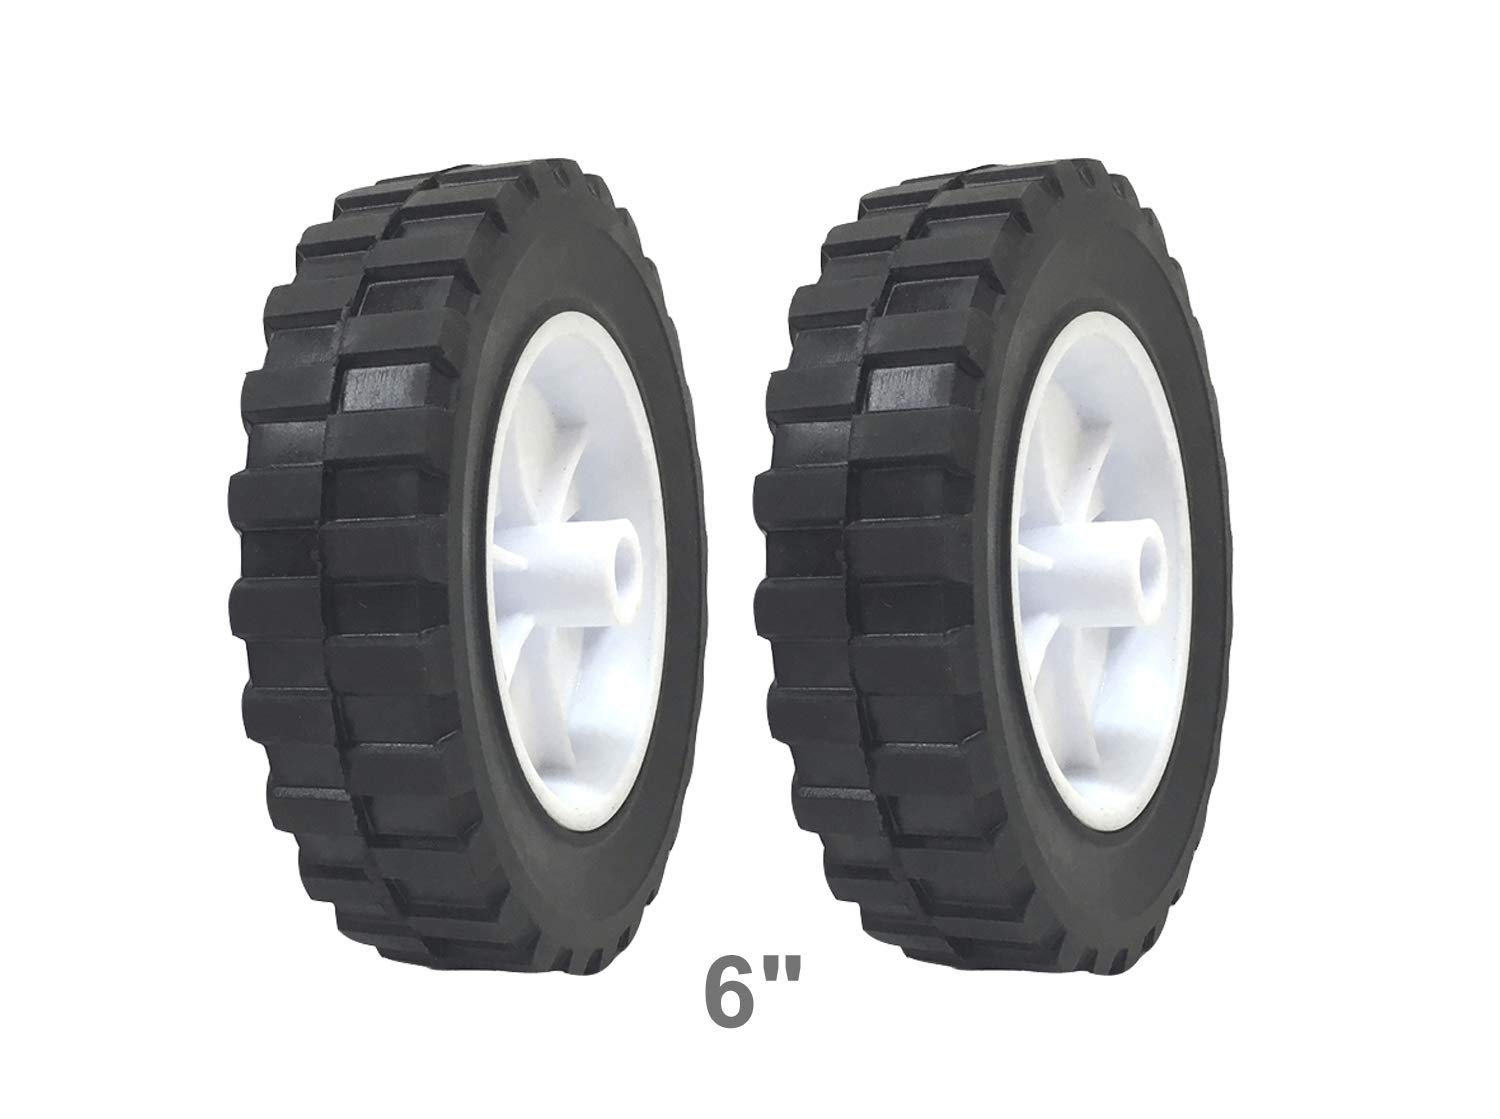 2 Pack Solid Rubber Flat Free Tire 6 x 1.5 Hand Truck Wheel – 1 2 Axle Hole 70 lbs Capacity